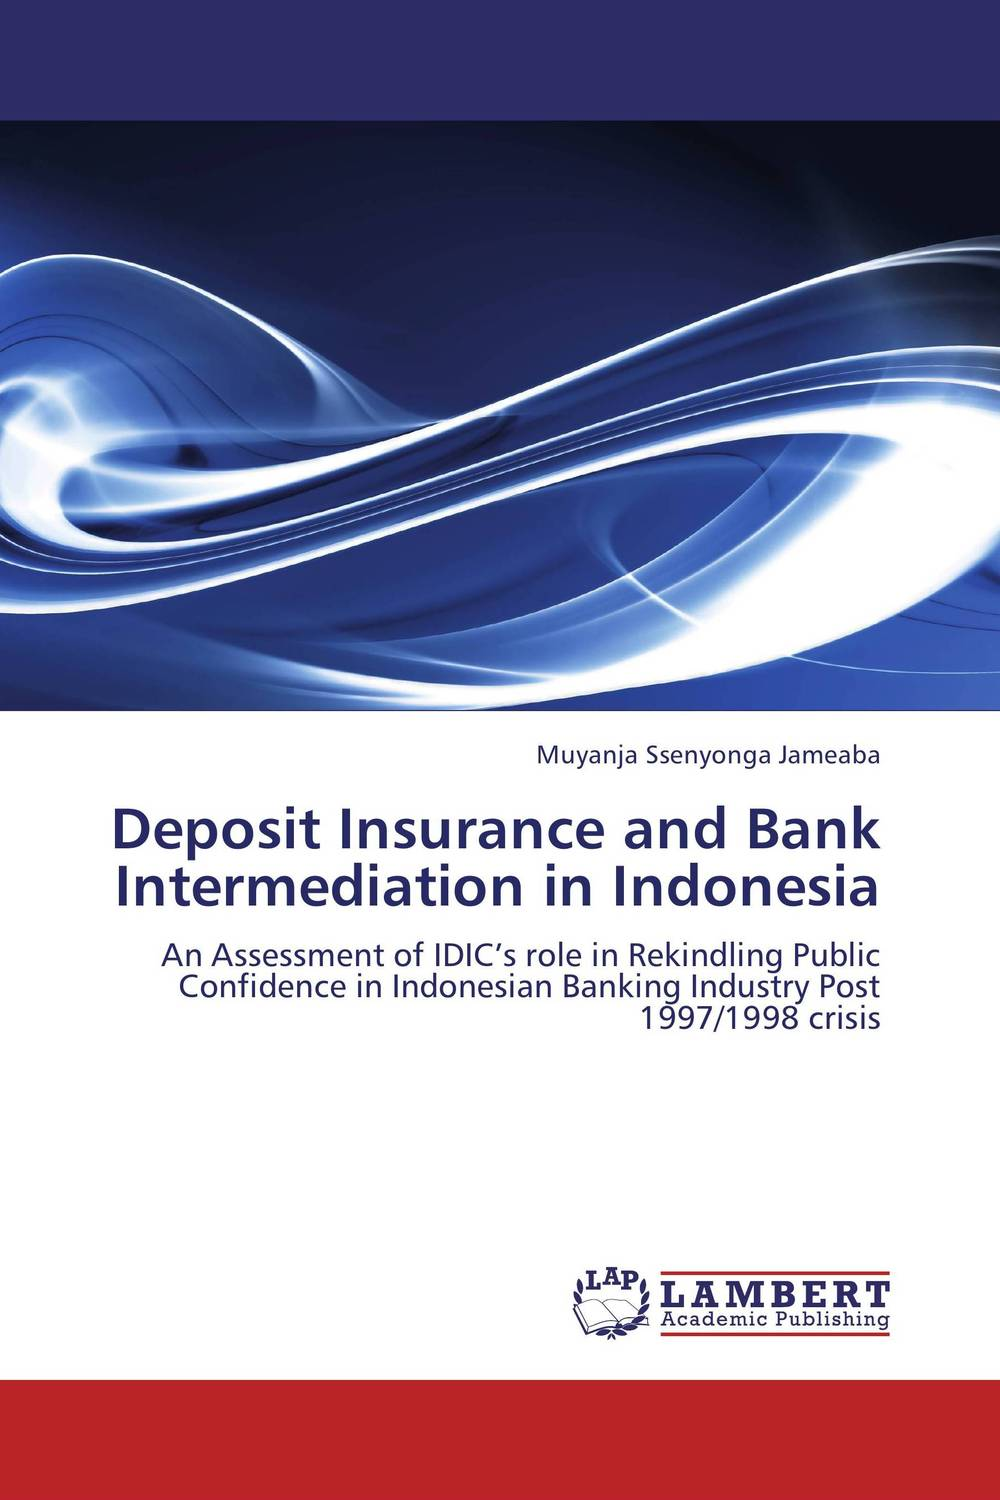 Deposit Insurance and Bank Intermediation in Indonesia geodynamics and ore deposit evolution in europe